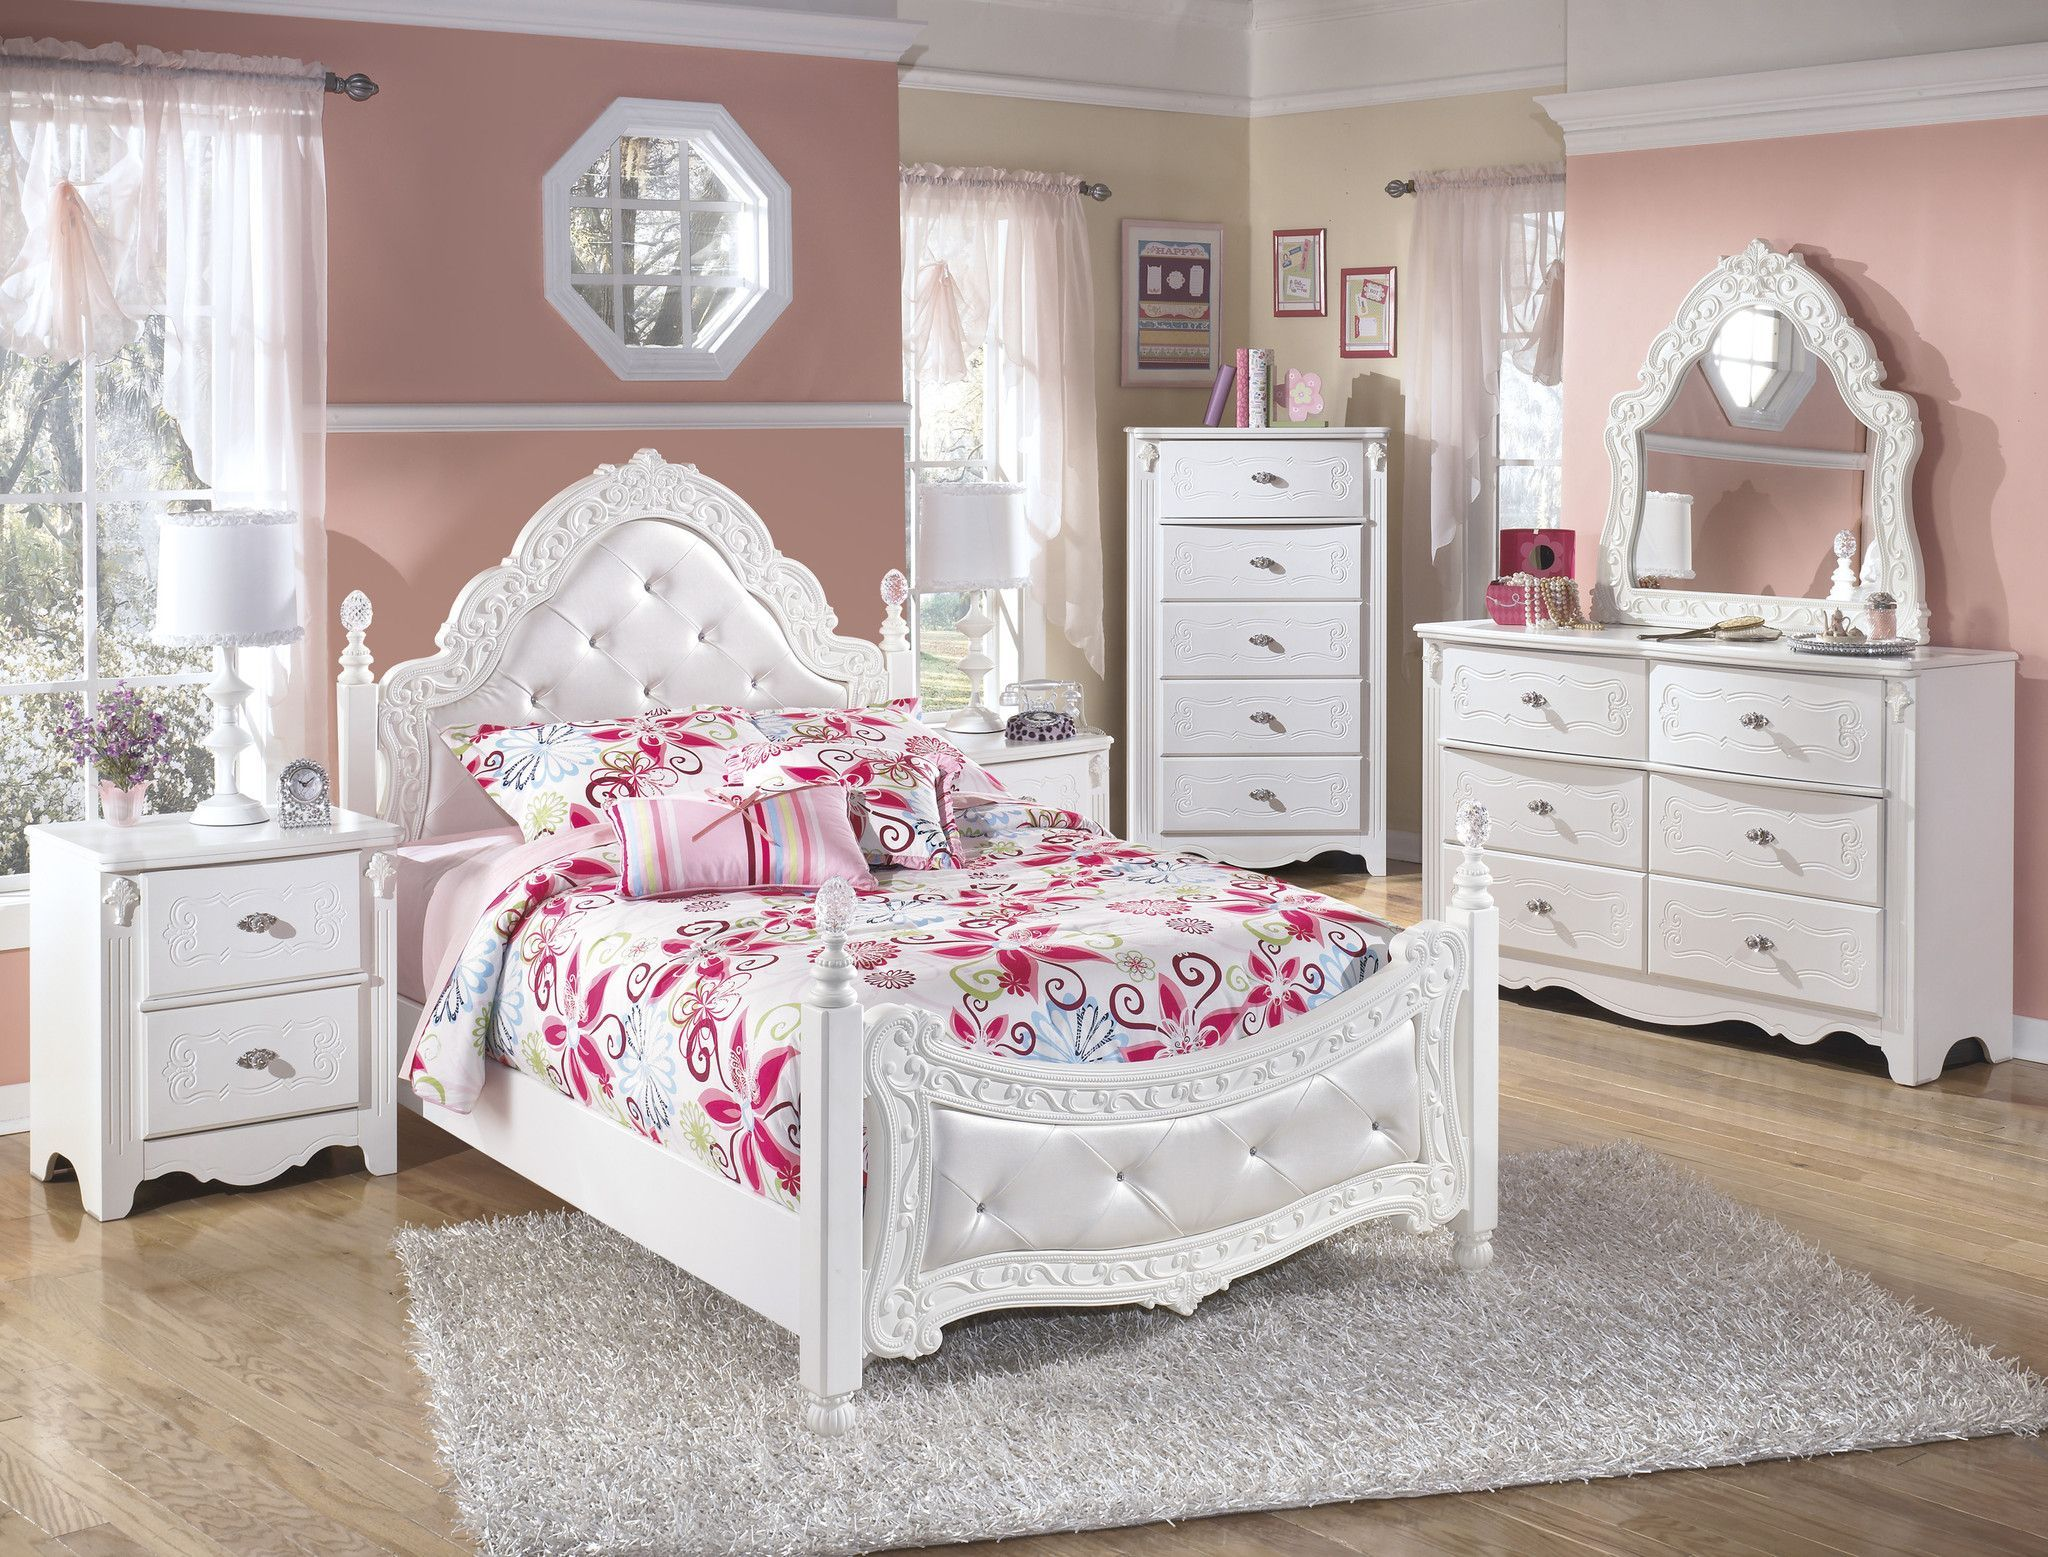 4 Piece Bayliss Bedroom Set Girls Bedroom Sets Twin Bedroom Sets Kids Bedroom Furniture